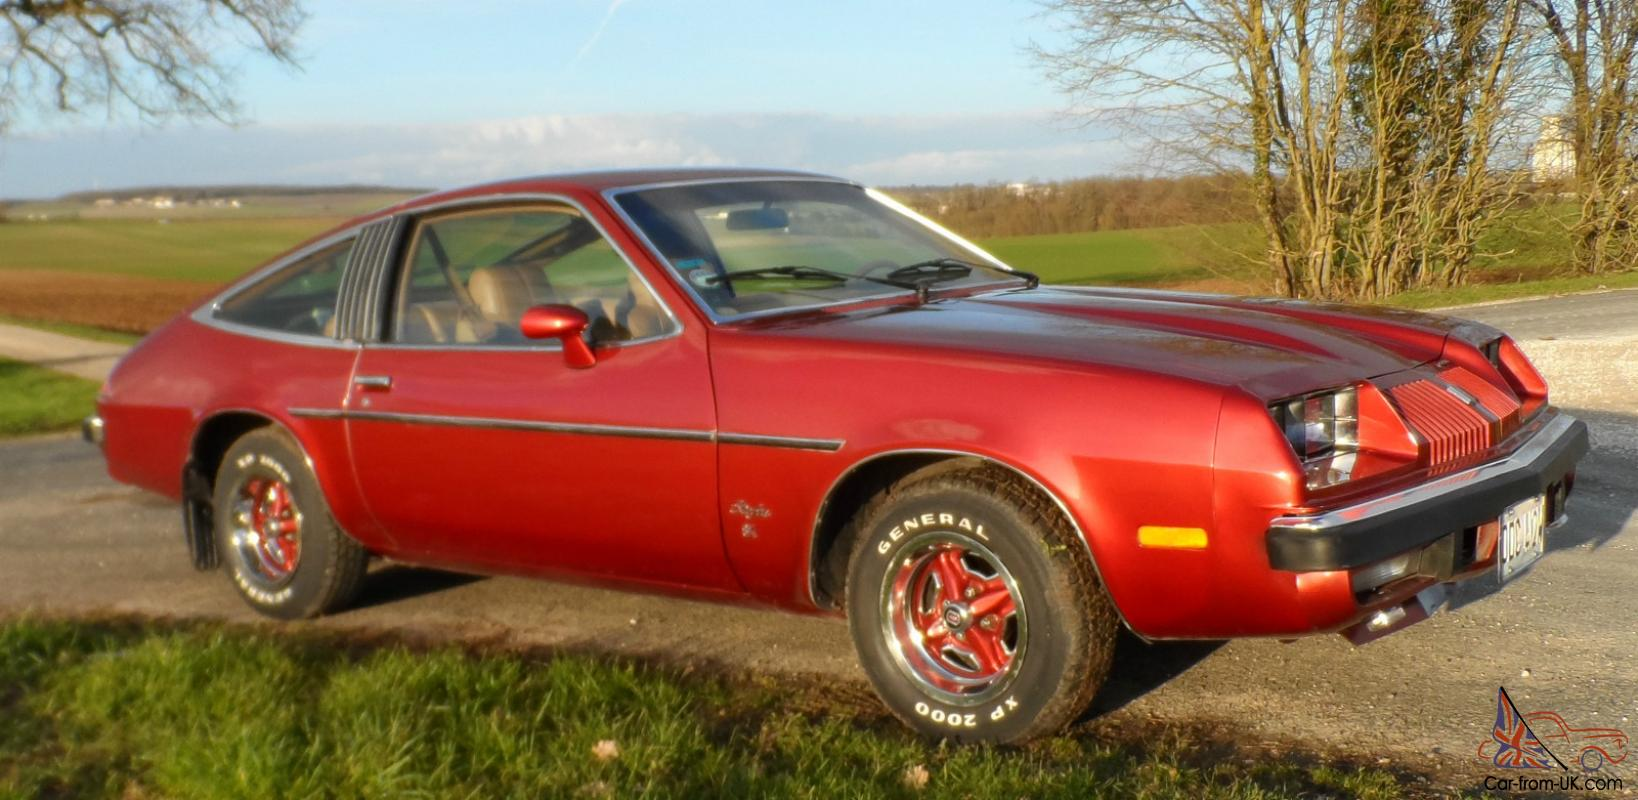 3733421 in addition Pontiac Firebird 1970 1981 2nd Generation besides 1961 RHODES SWIFTSURE 33 SAILBOAT 232344743700 together with Sale likewise V8 Engine Ford. on 80s oldsmobile engine